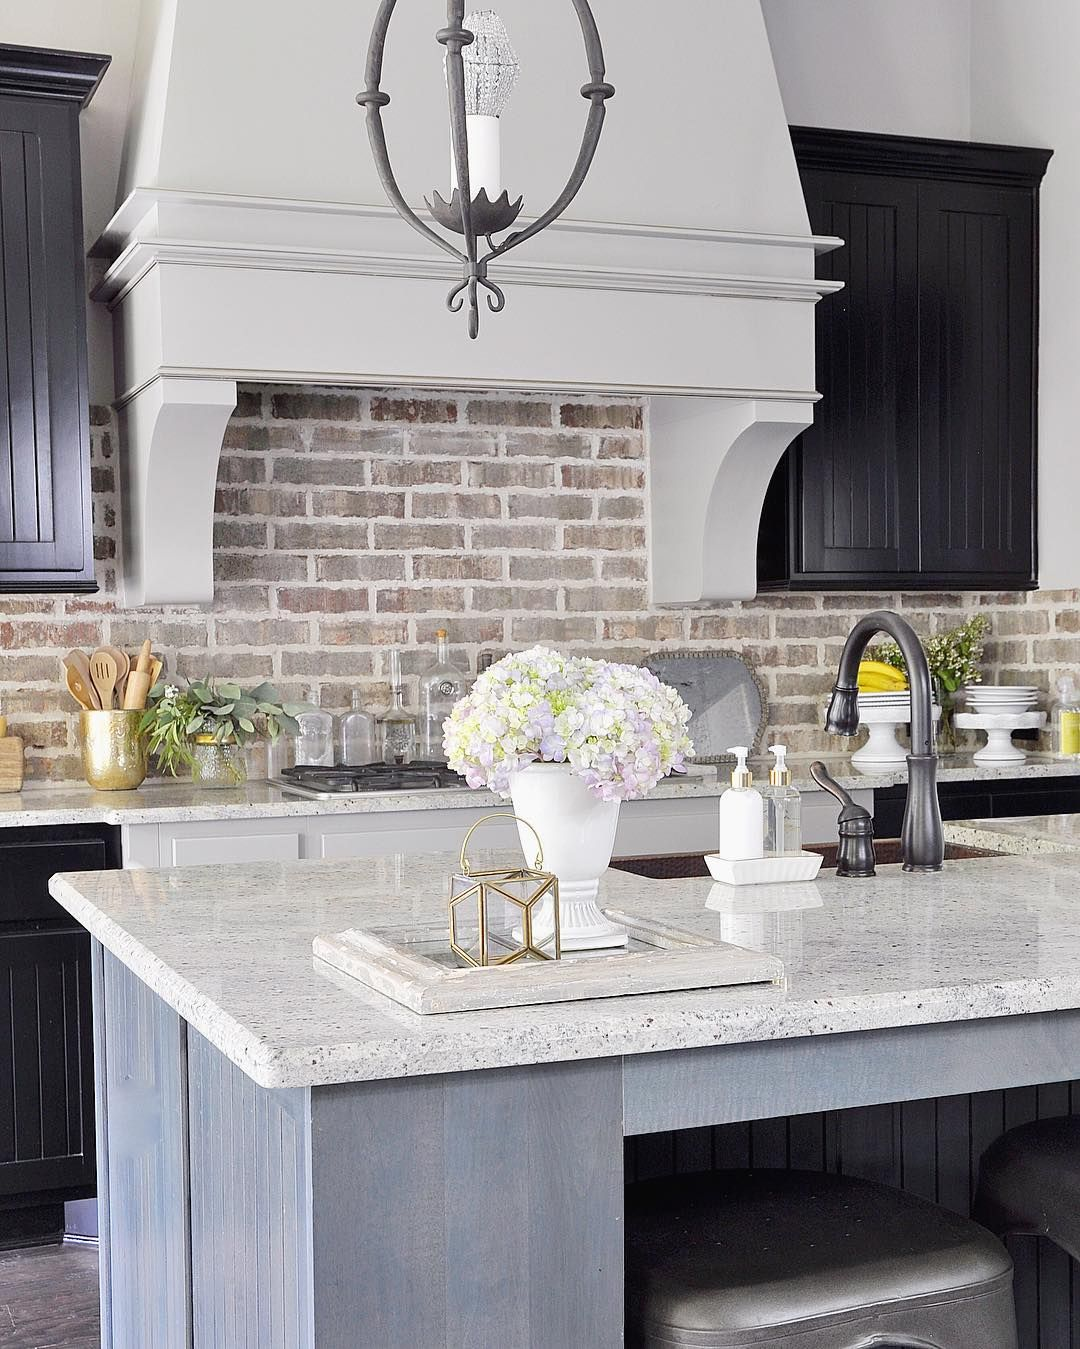 Brick Style Backsplash With Cream/white Cabinets. Pretty Modern Rustic  Kitchen With Brick Style Backsplash